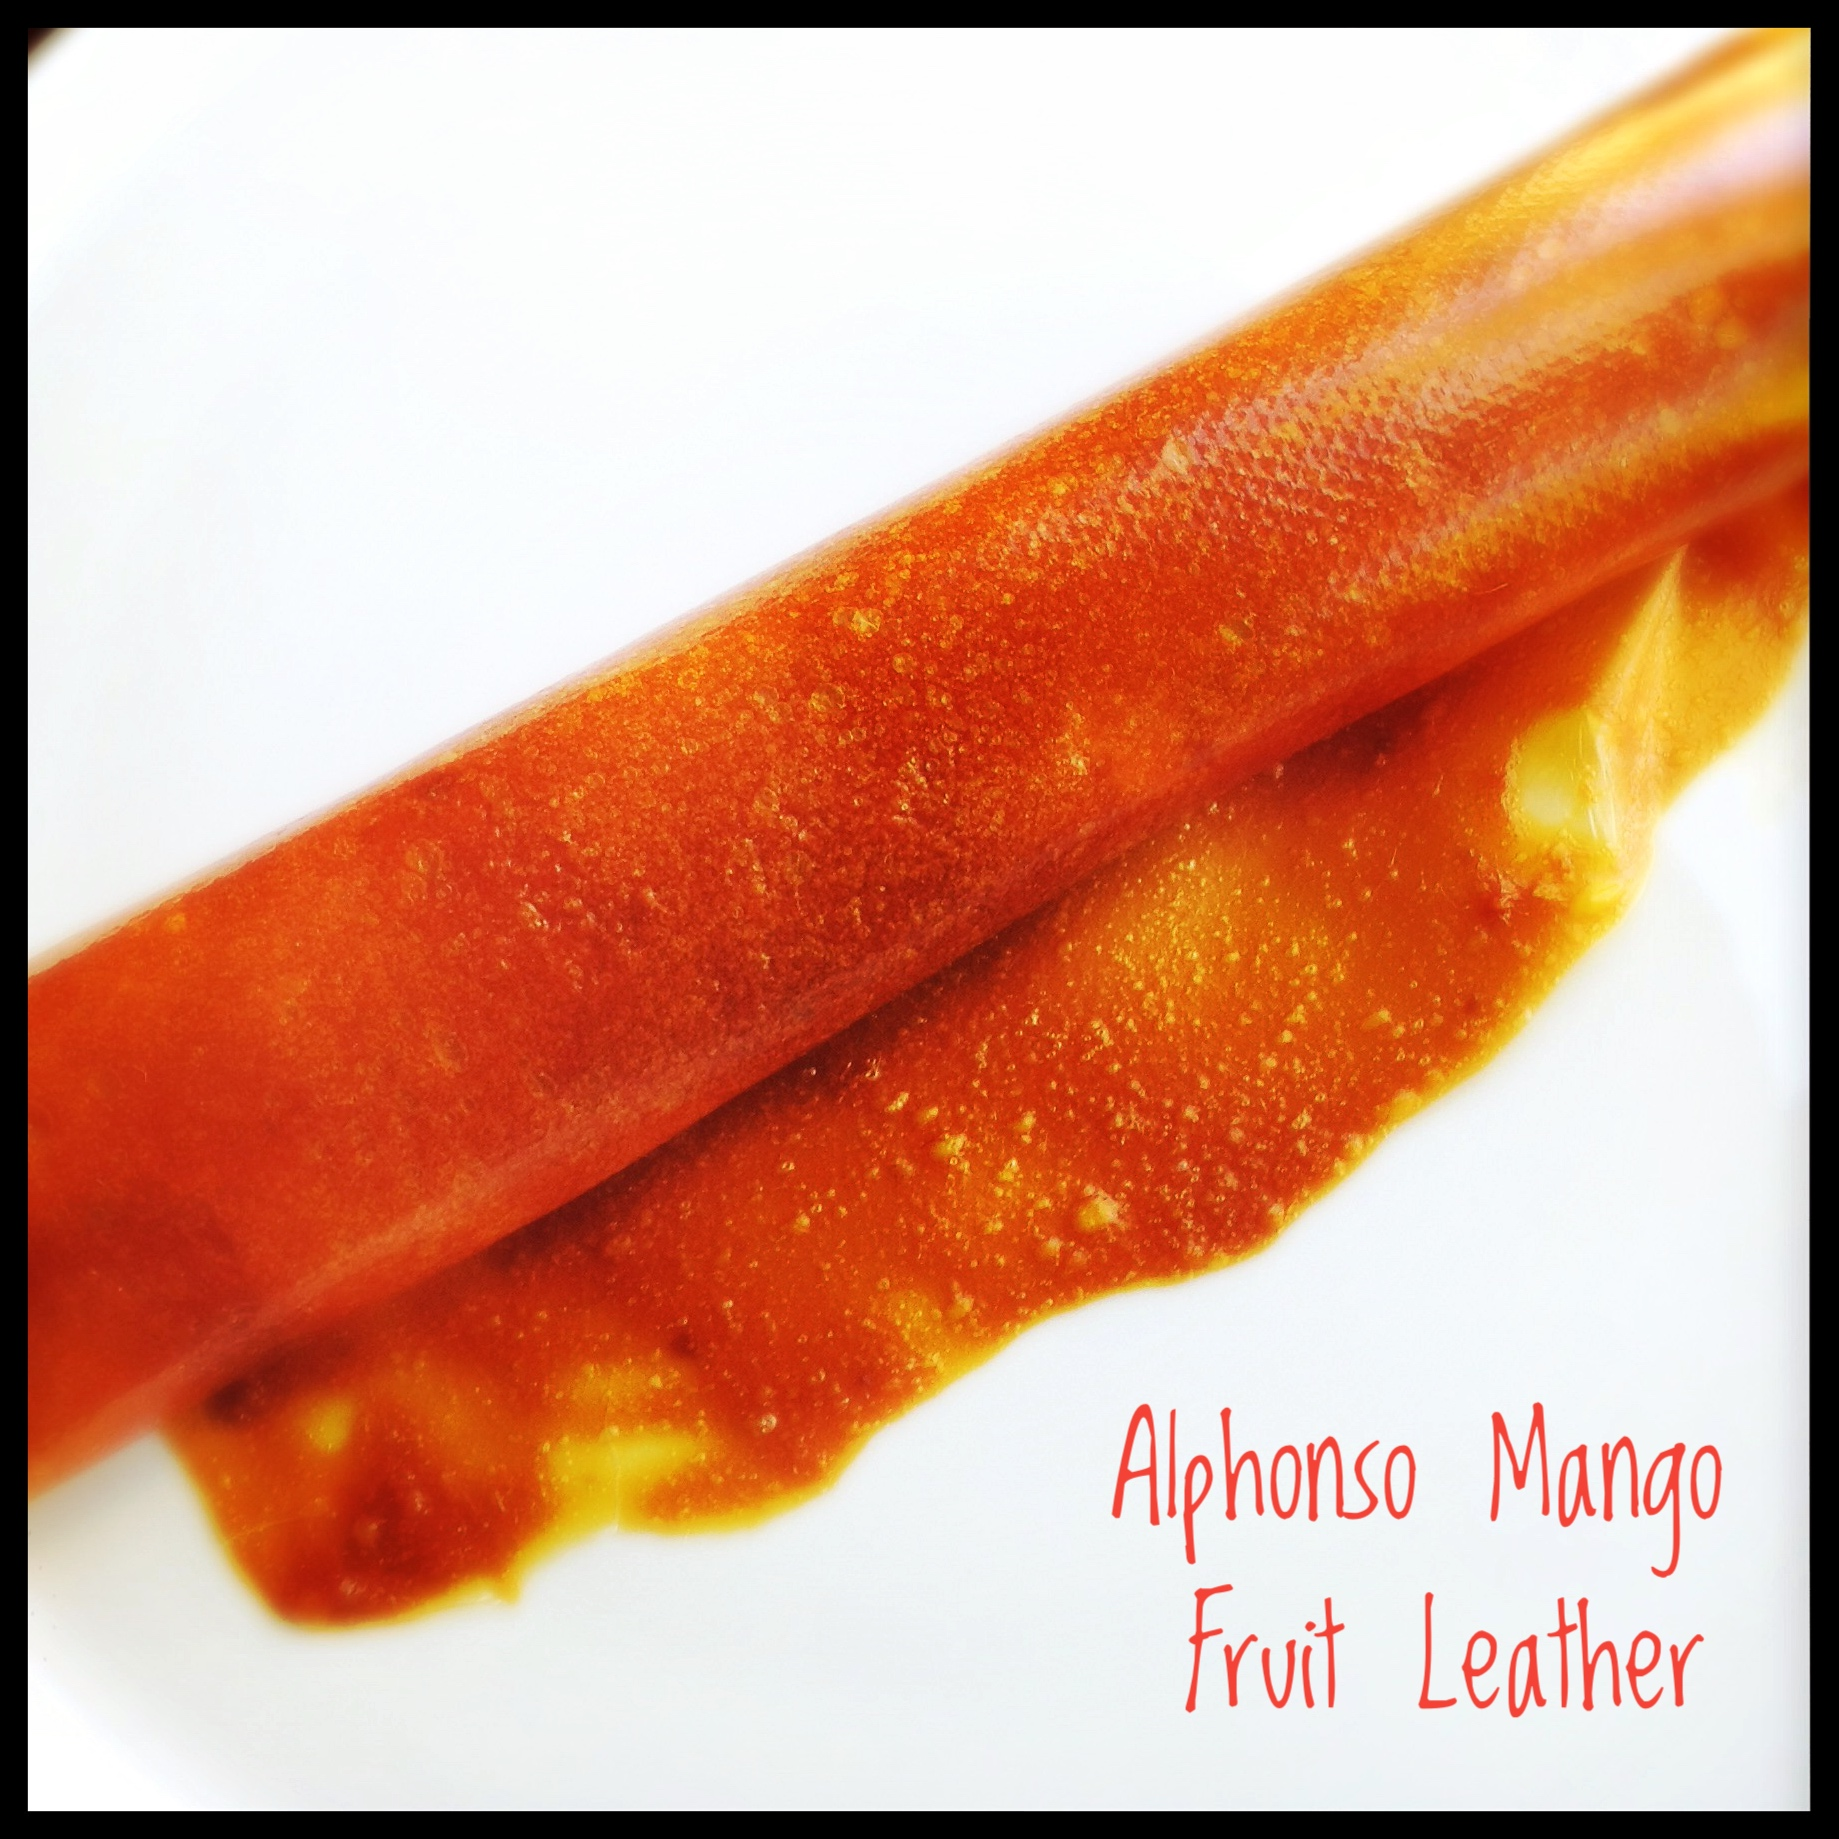 Recipe: How to Make Dried Mango and Mango Fruit Leather